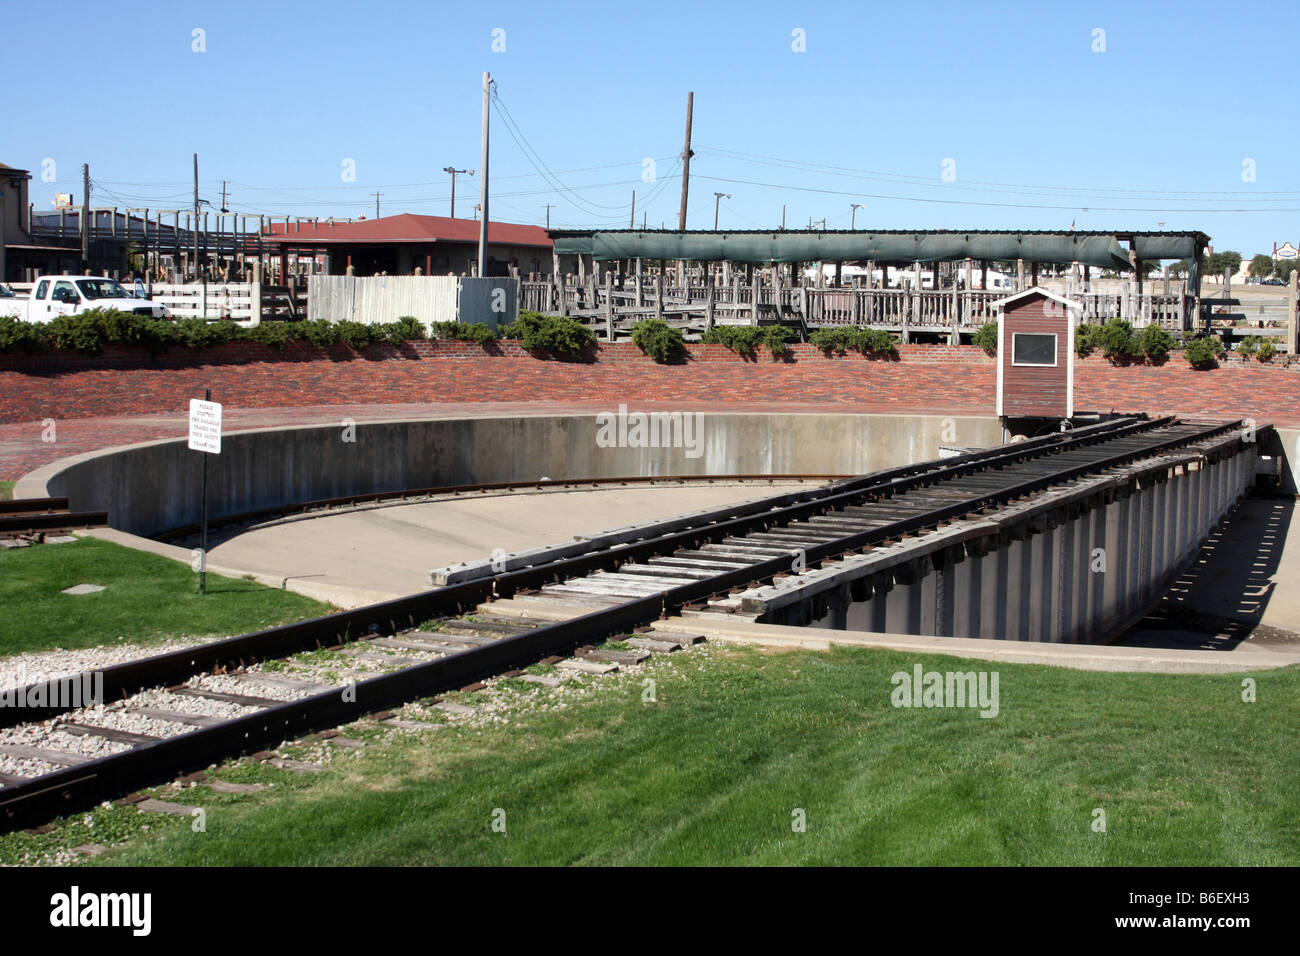 A railroad turnaround track circle for trains at the